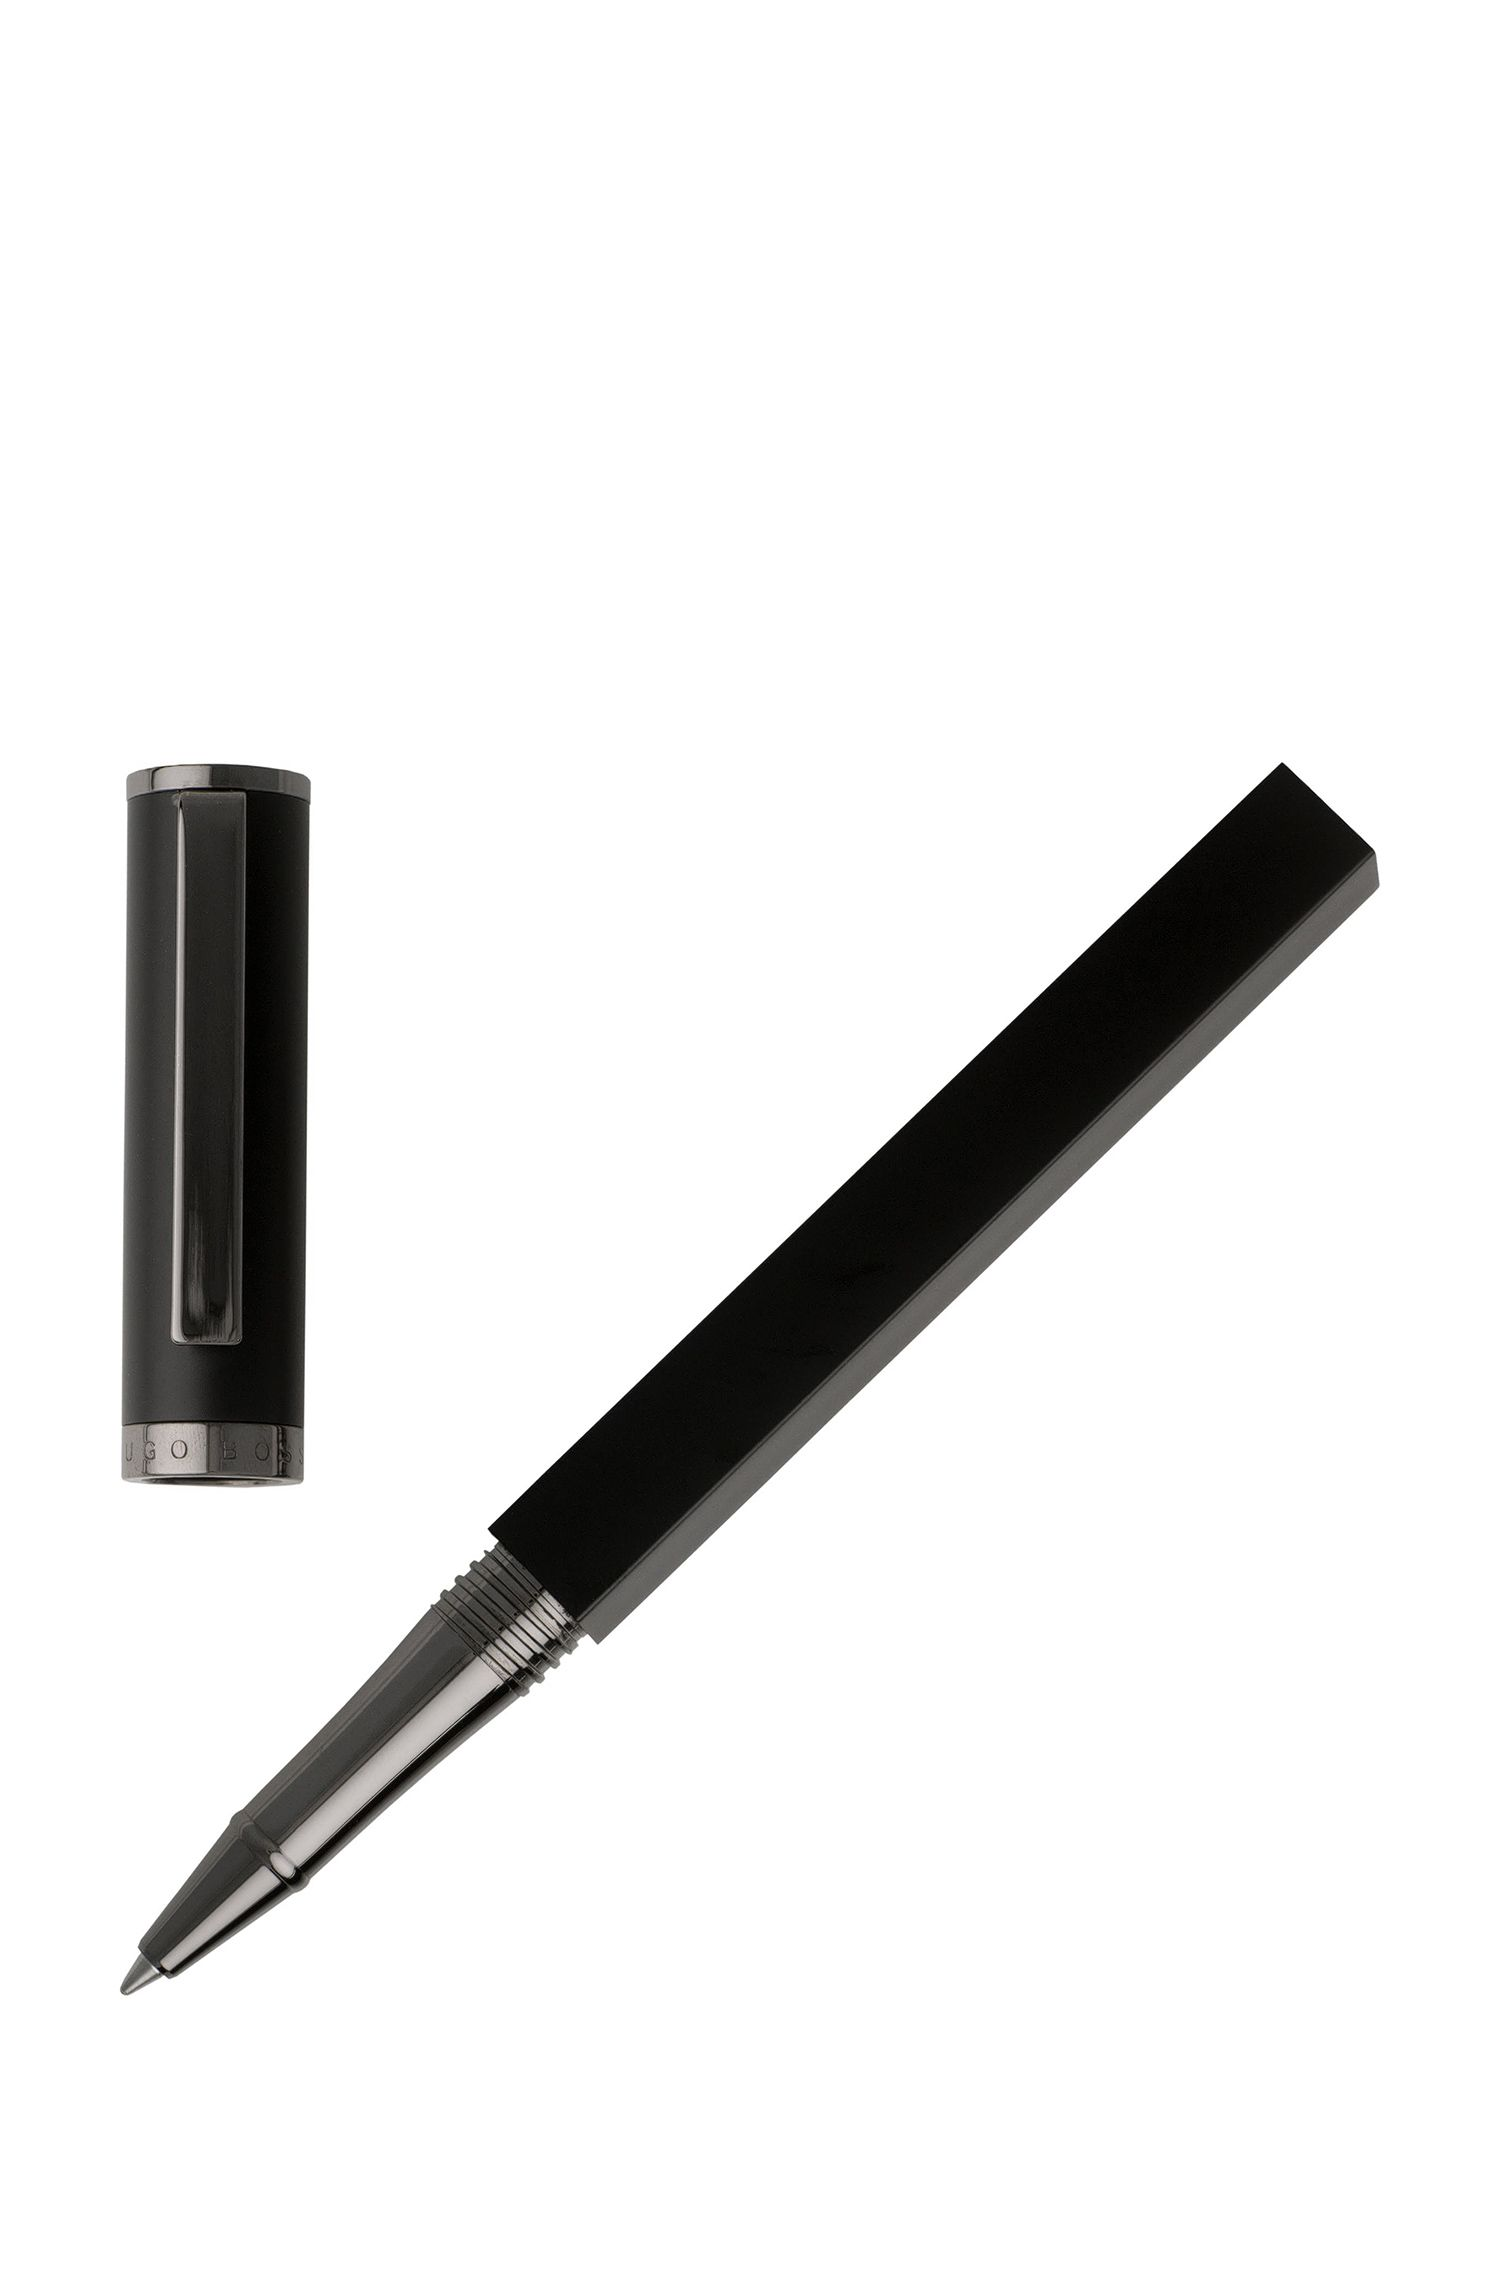 Dual-structure rollerball pen in matt black lacquer